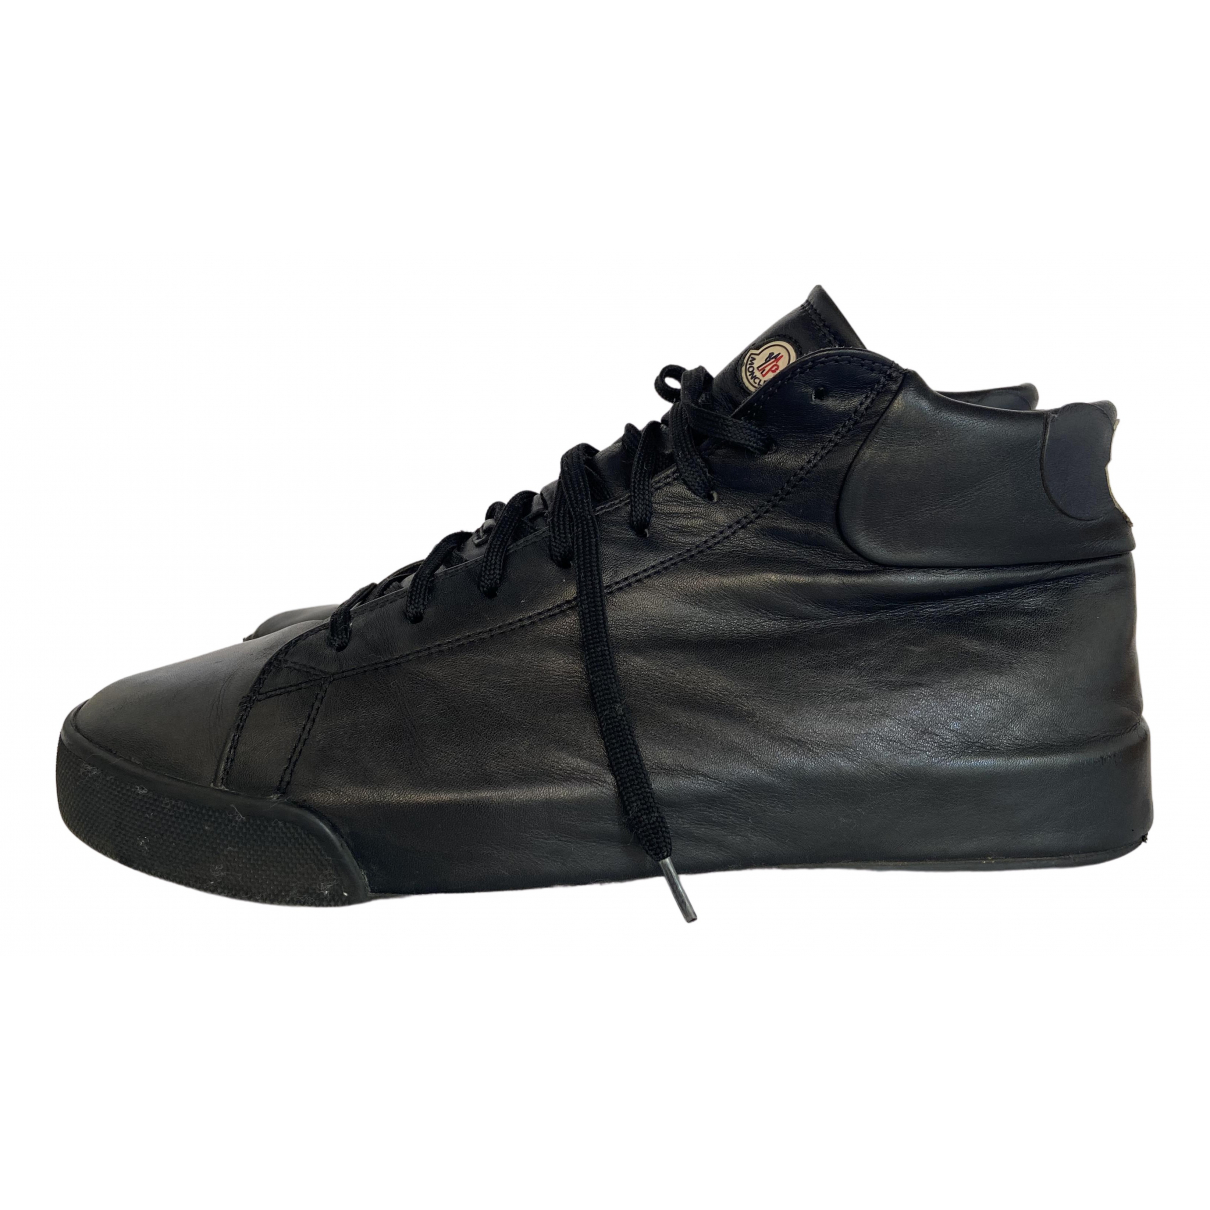 Moncler \N Black Leather Trainers for Men 42 EU